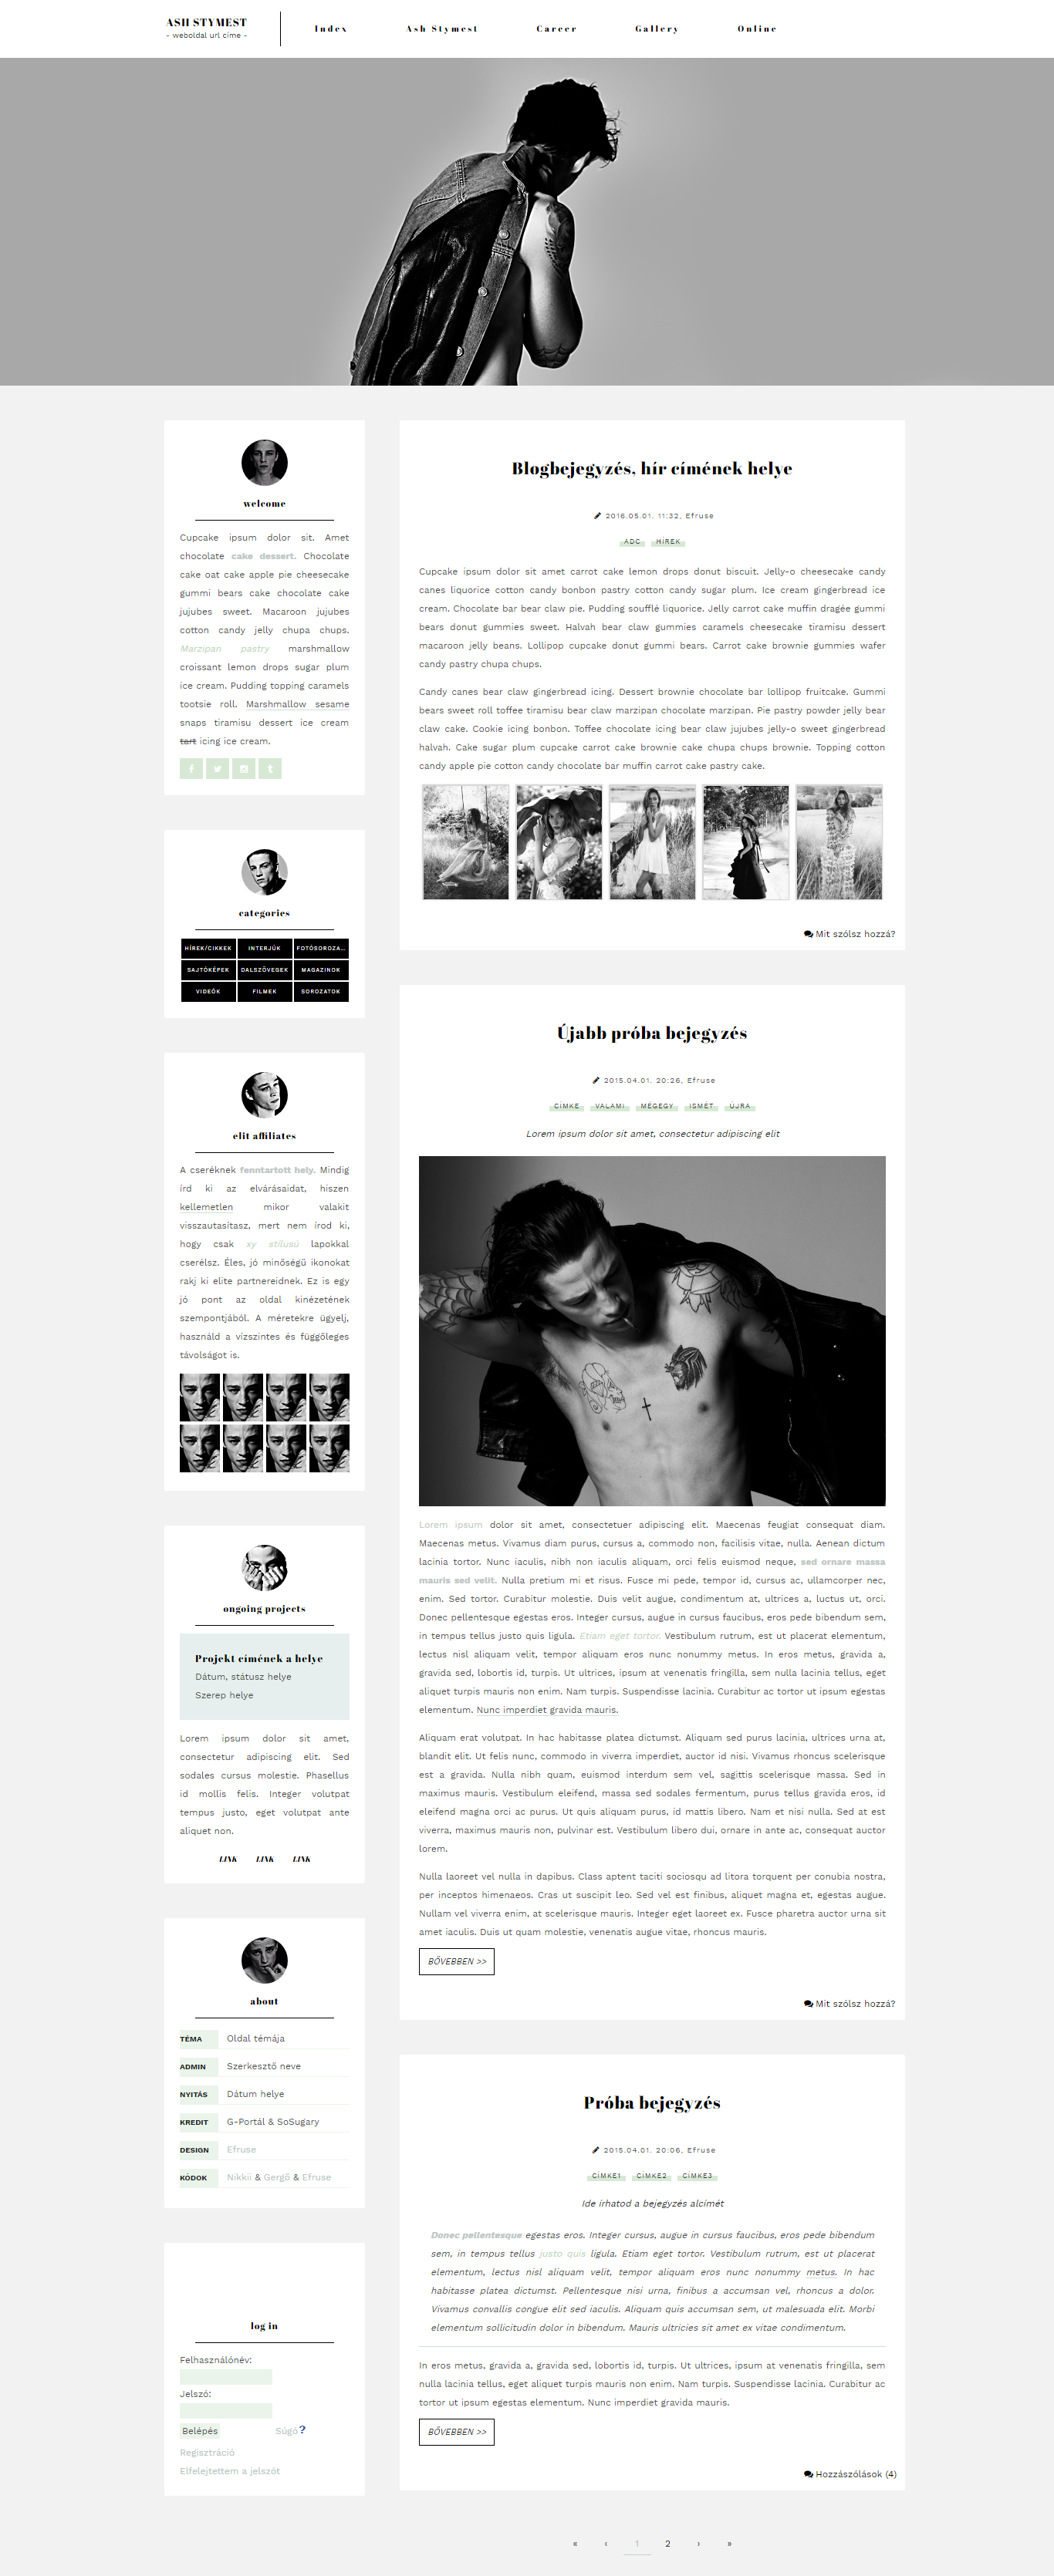 0002# free G-Portal layout with Ash Stymest by Efruse